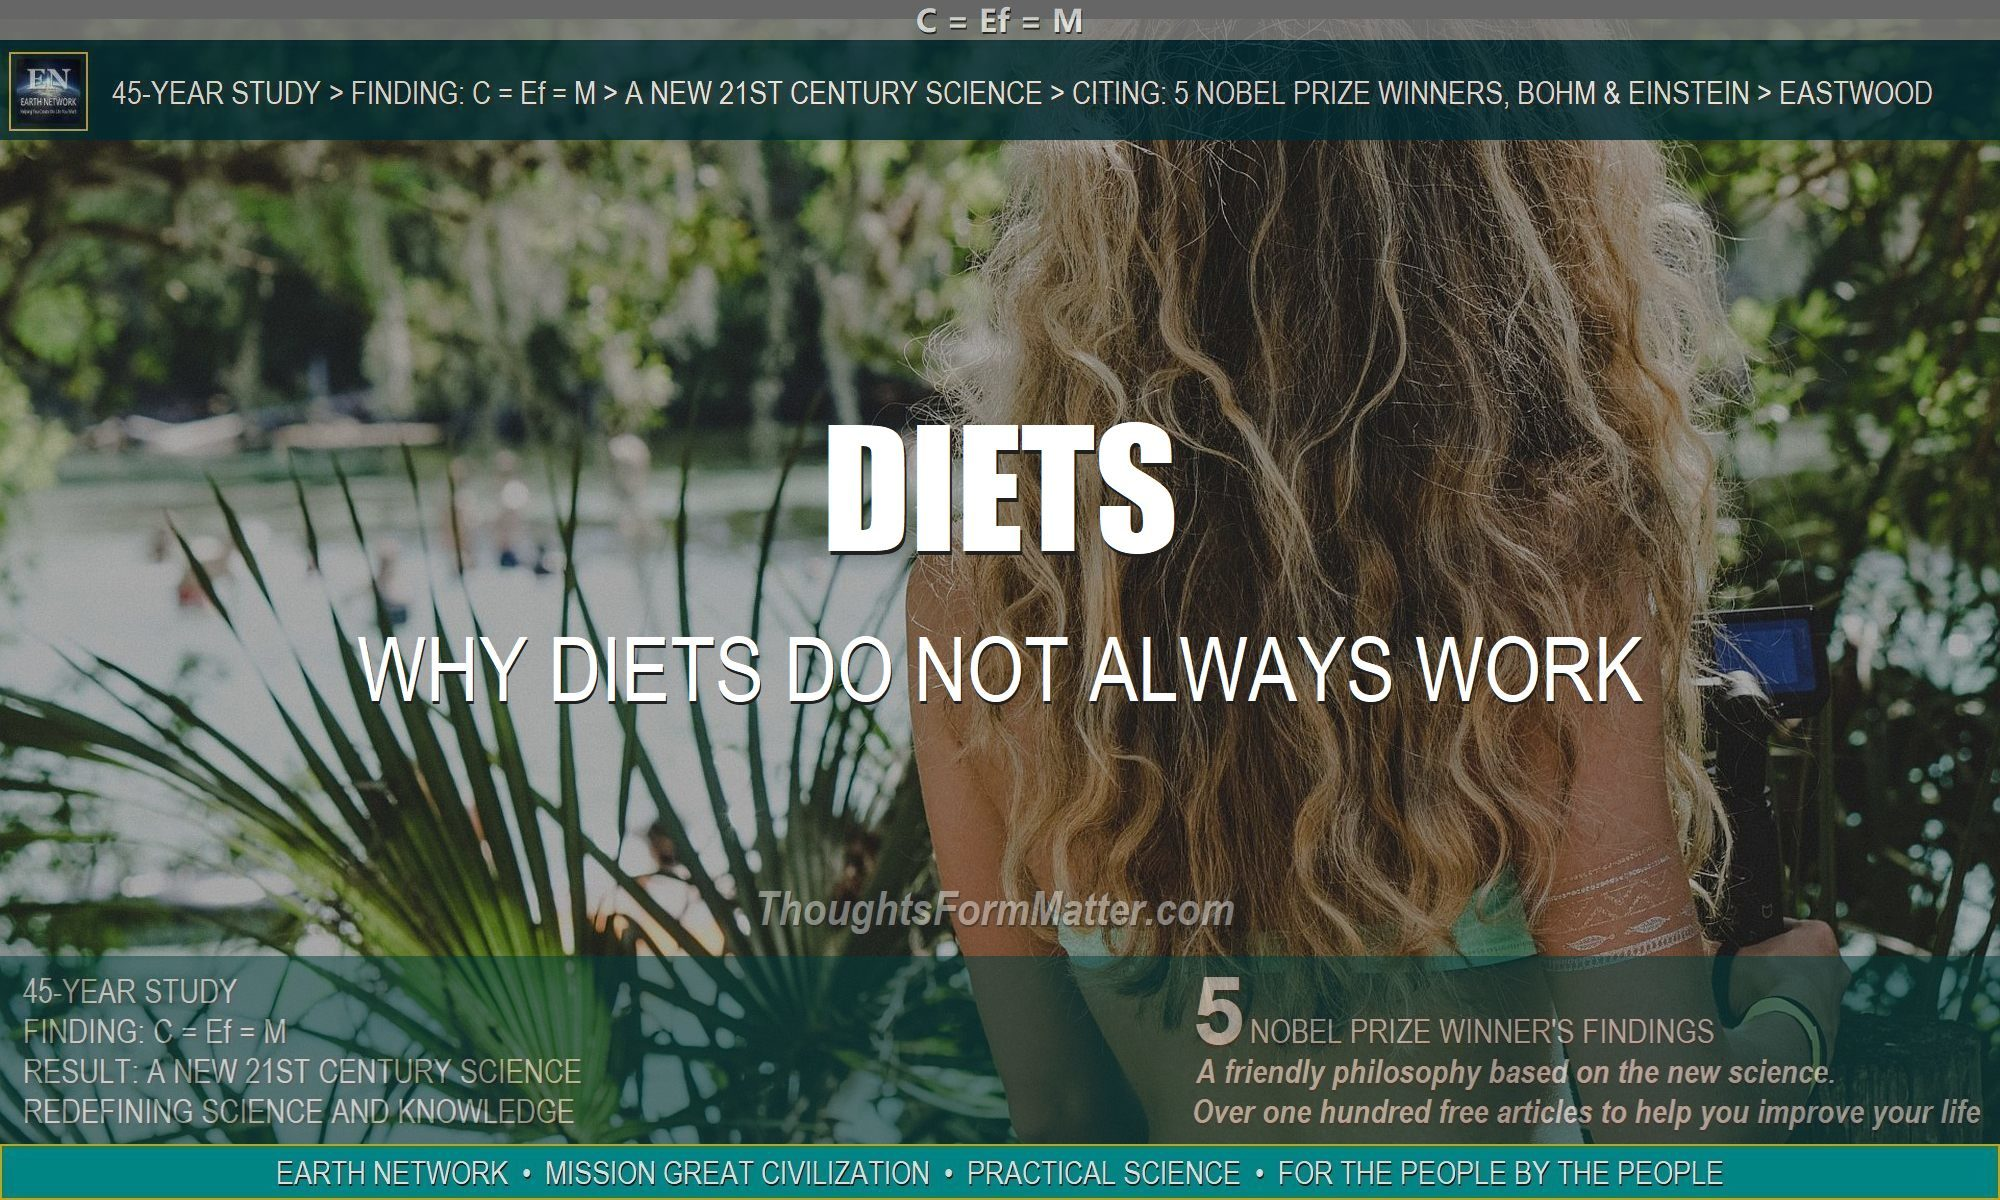 Woman thinks diet doesn't work . Metaphysical and psychological reason for ineffective weight loss program.